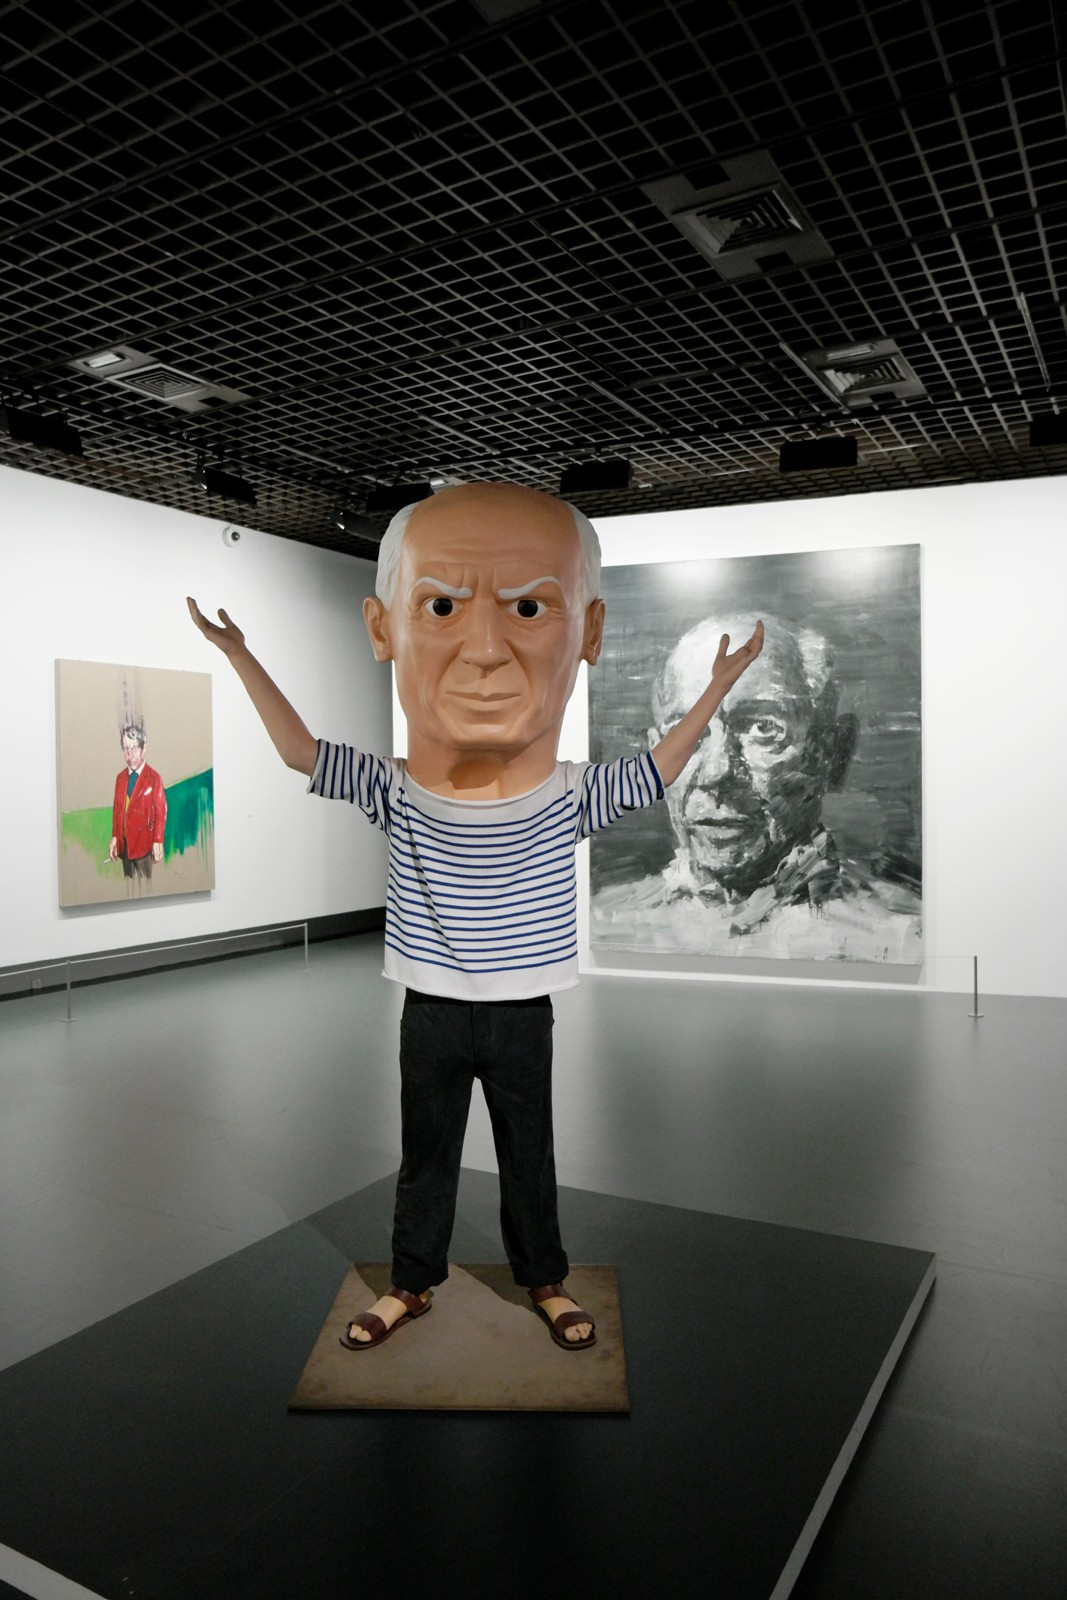 Untitled (Picasso), 2009, Maurizio Cattelan